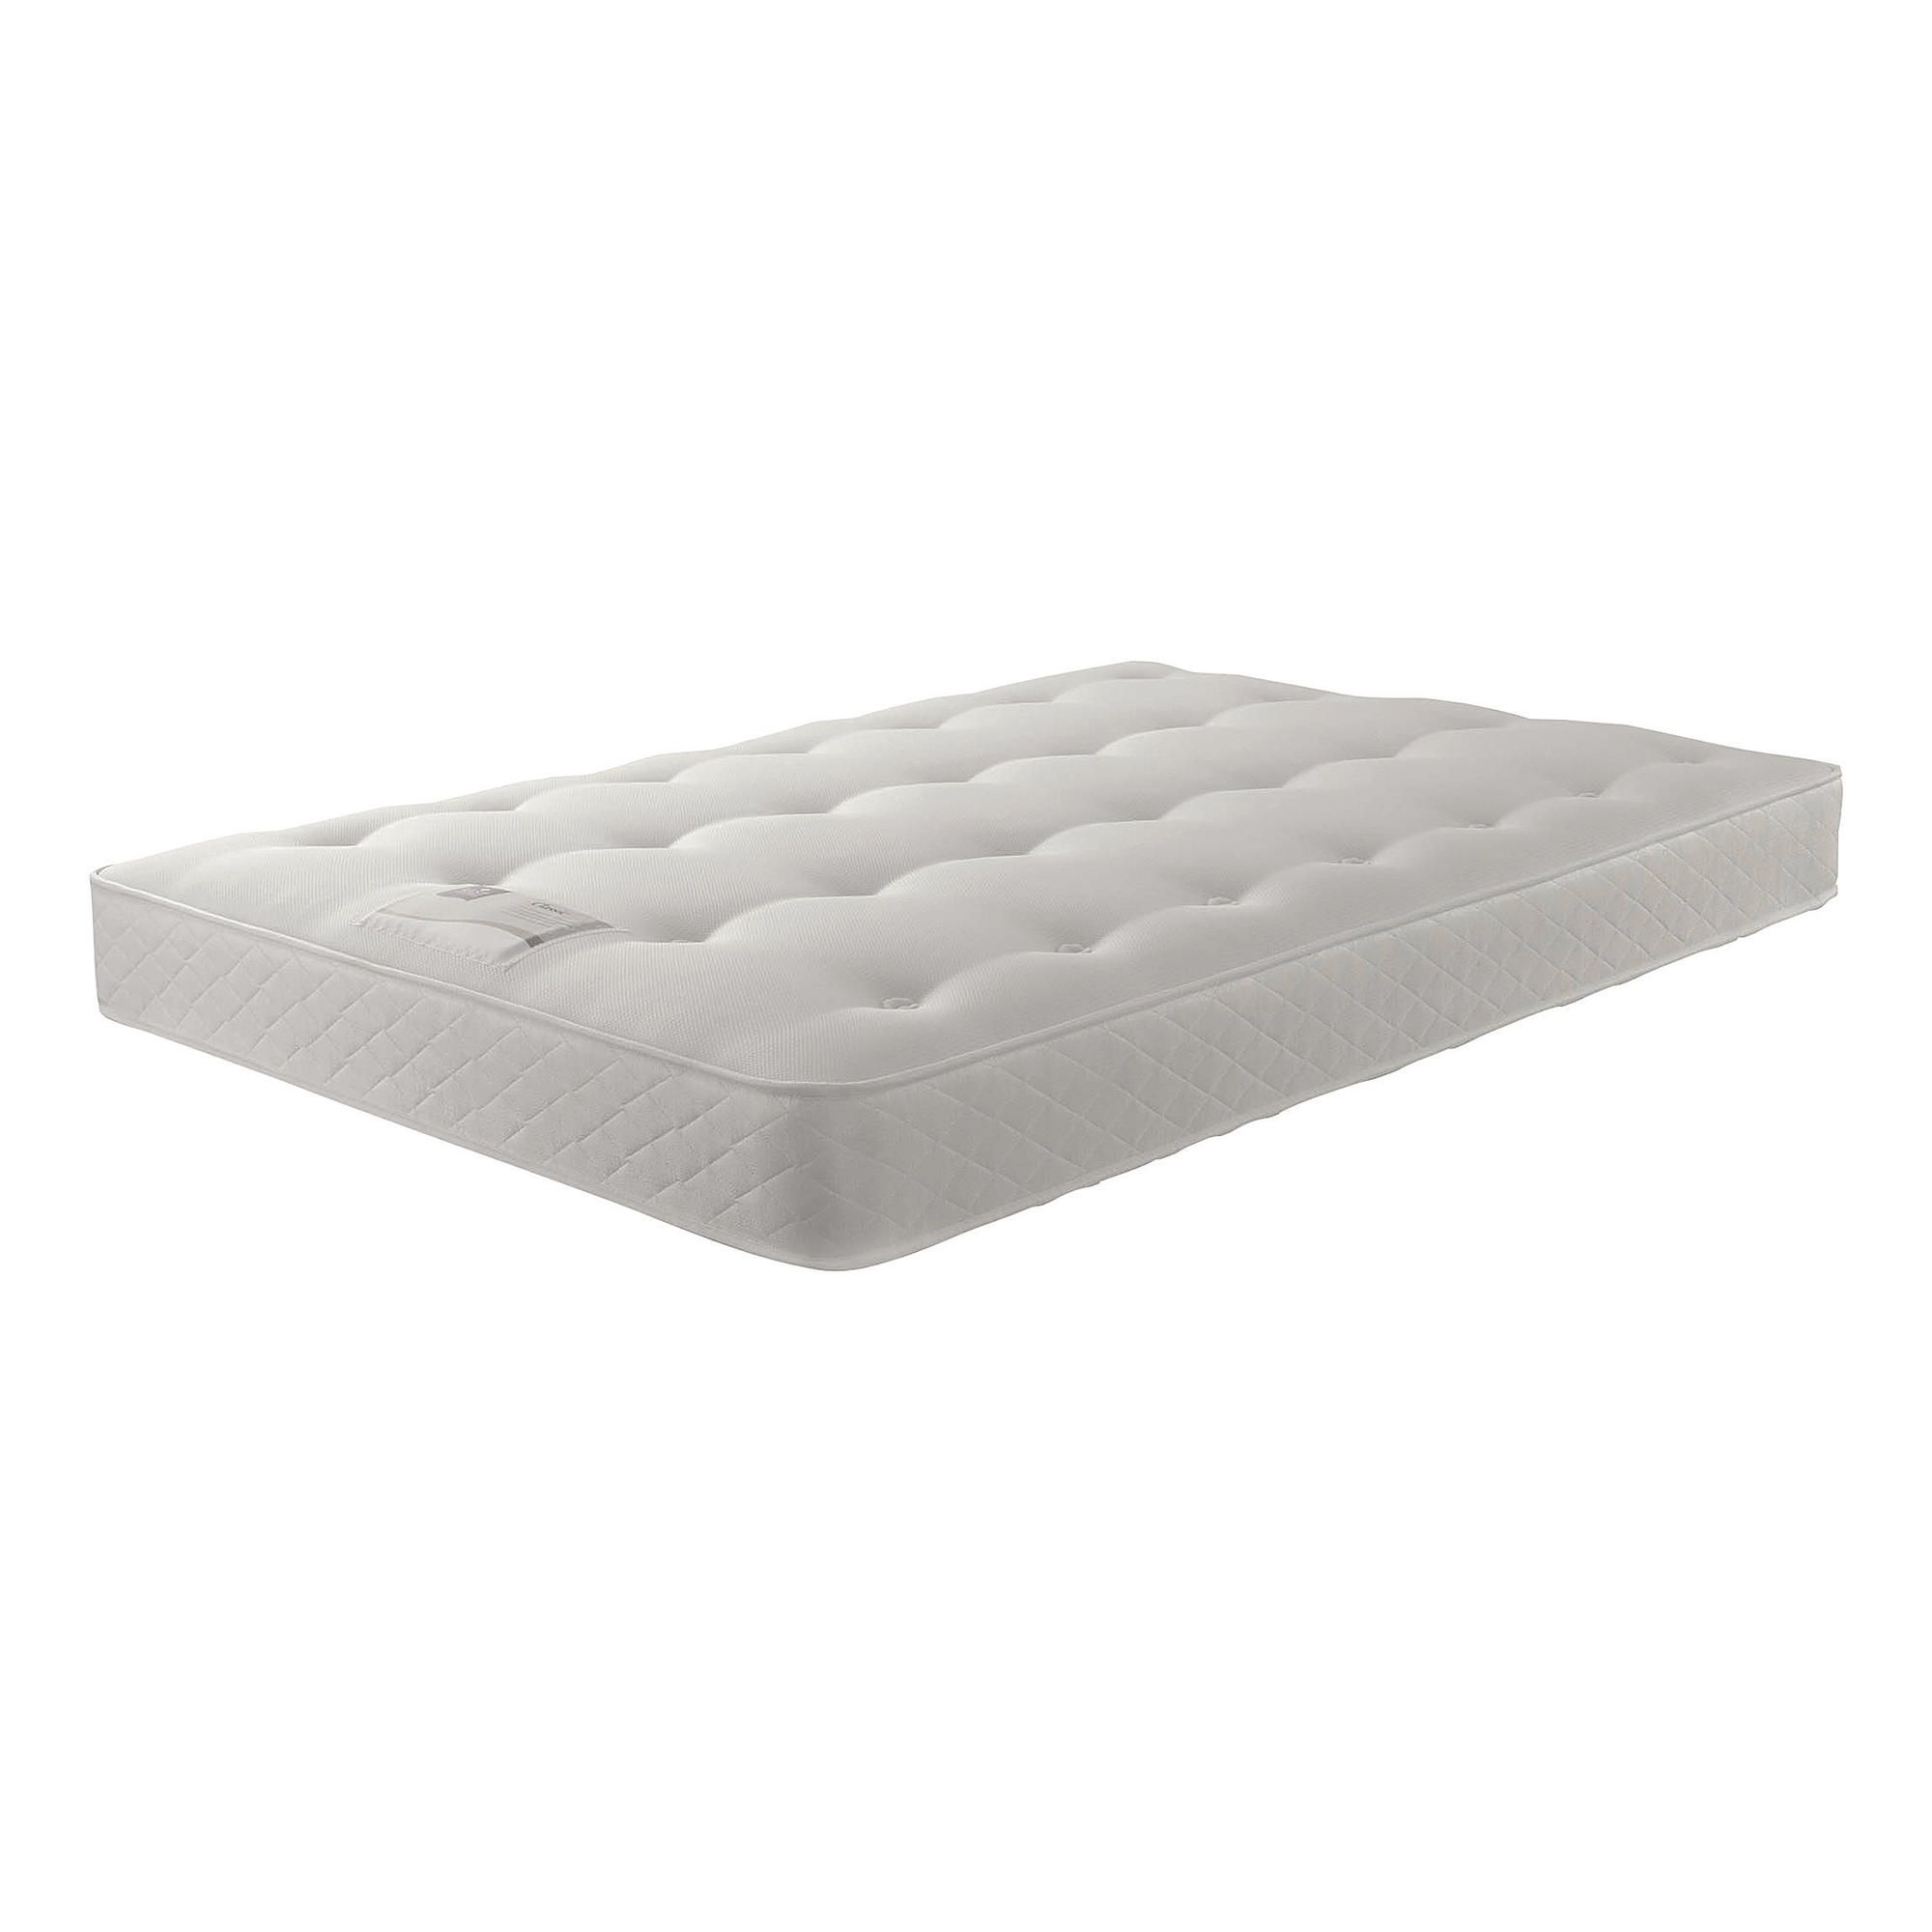 Rest Assured Calm Orthopaedic Hand Tufted Double Mattress at Tescos Direct